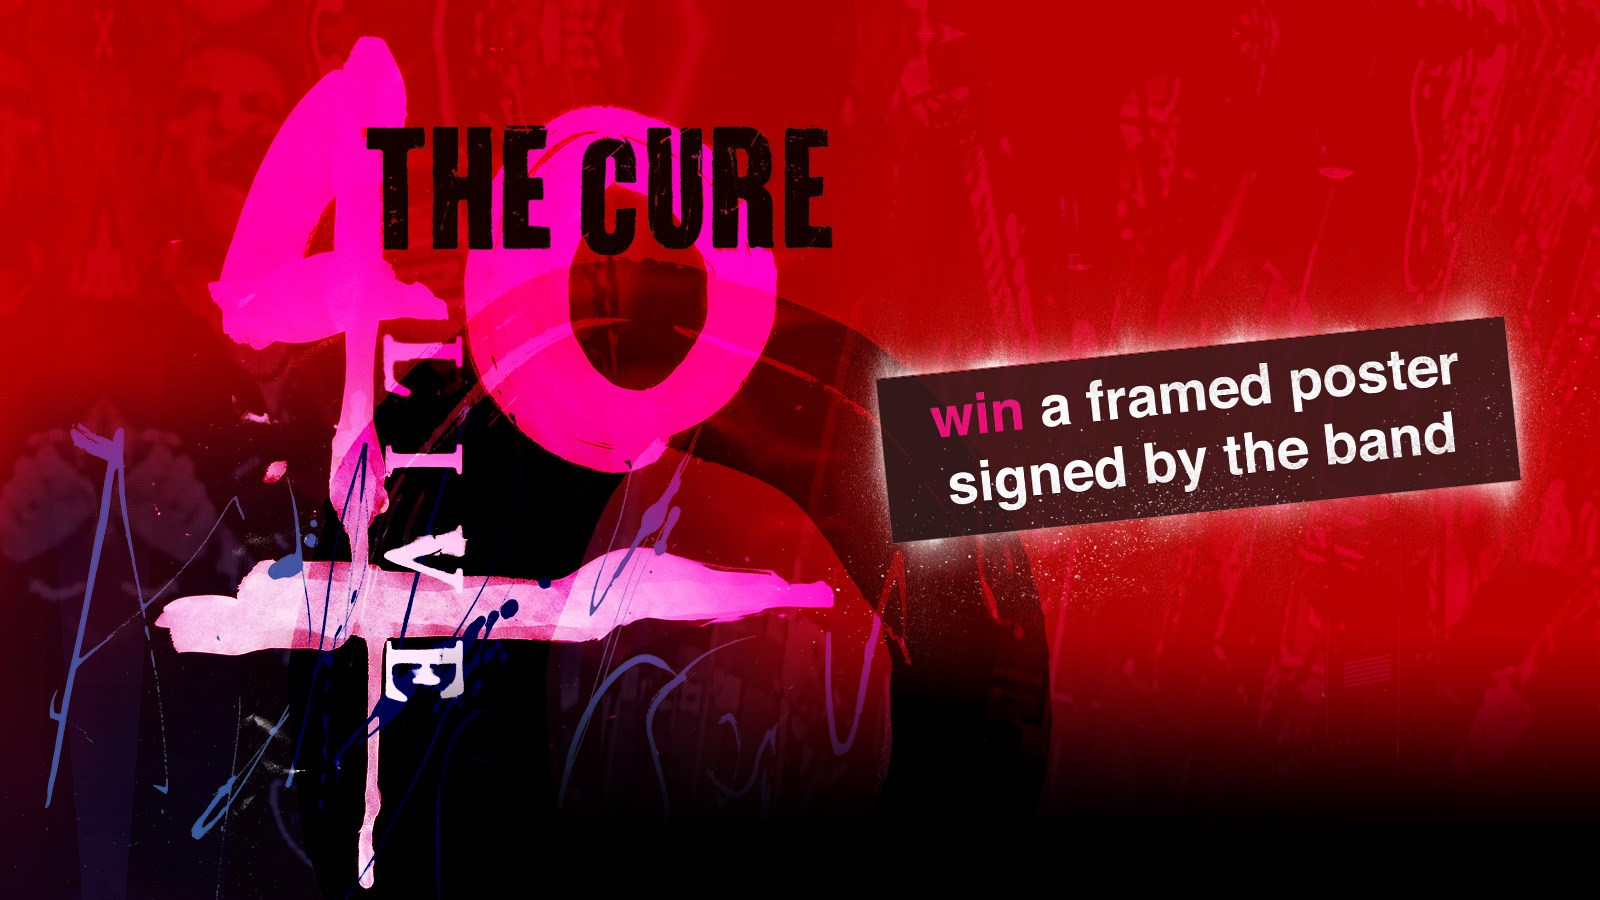 The Cure Prize Draw